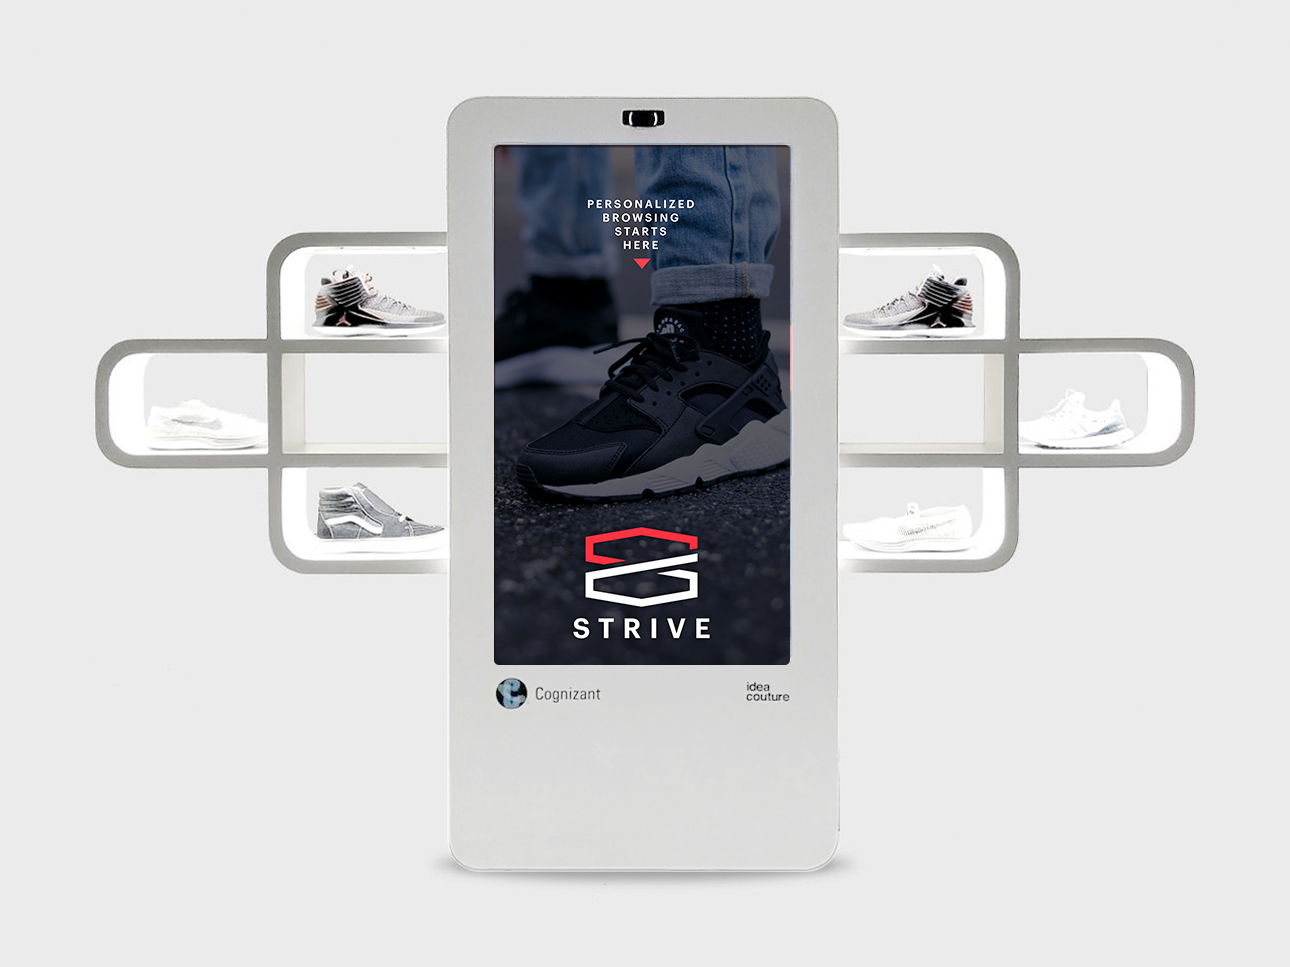 Strive-Retail-Mockup-01.jpg